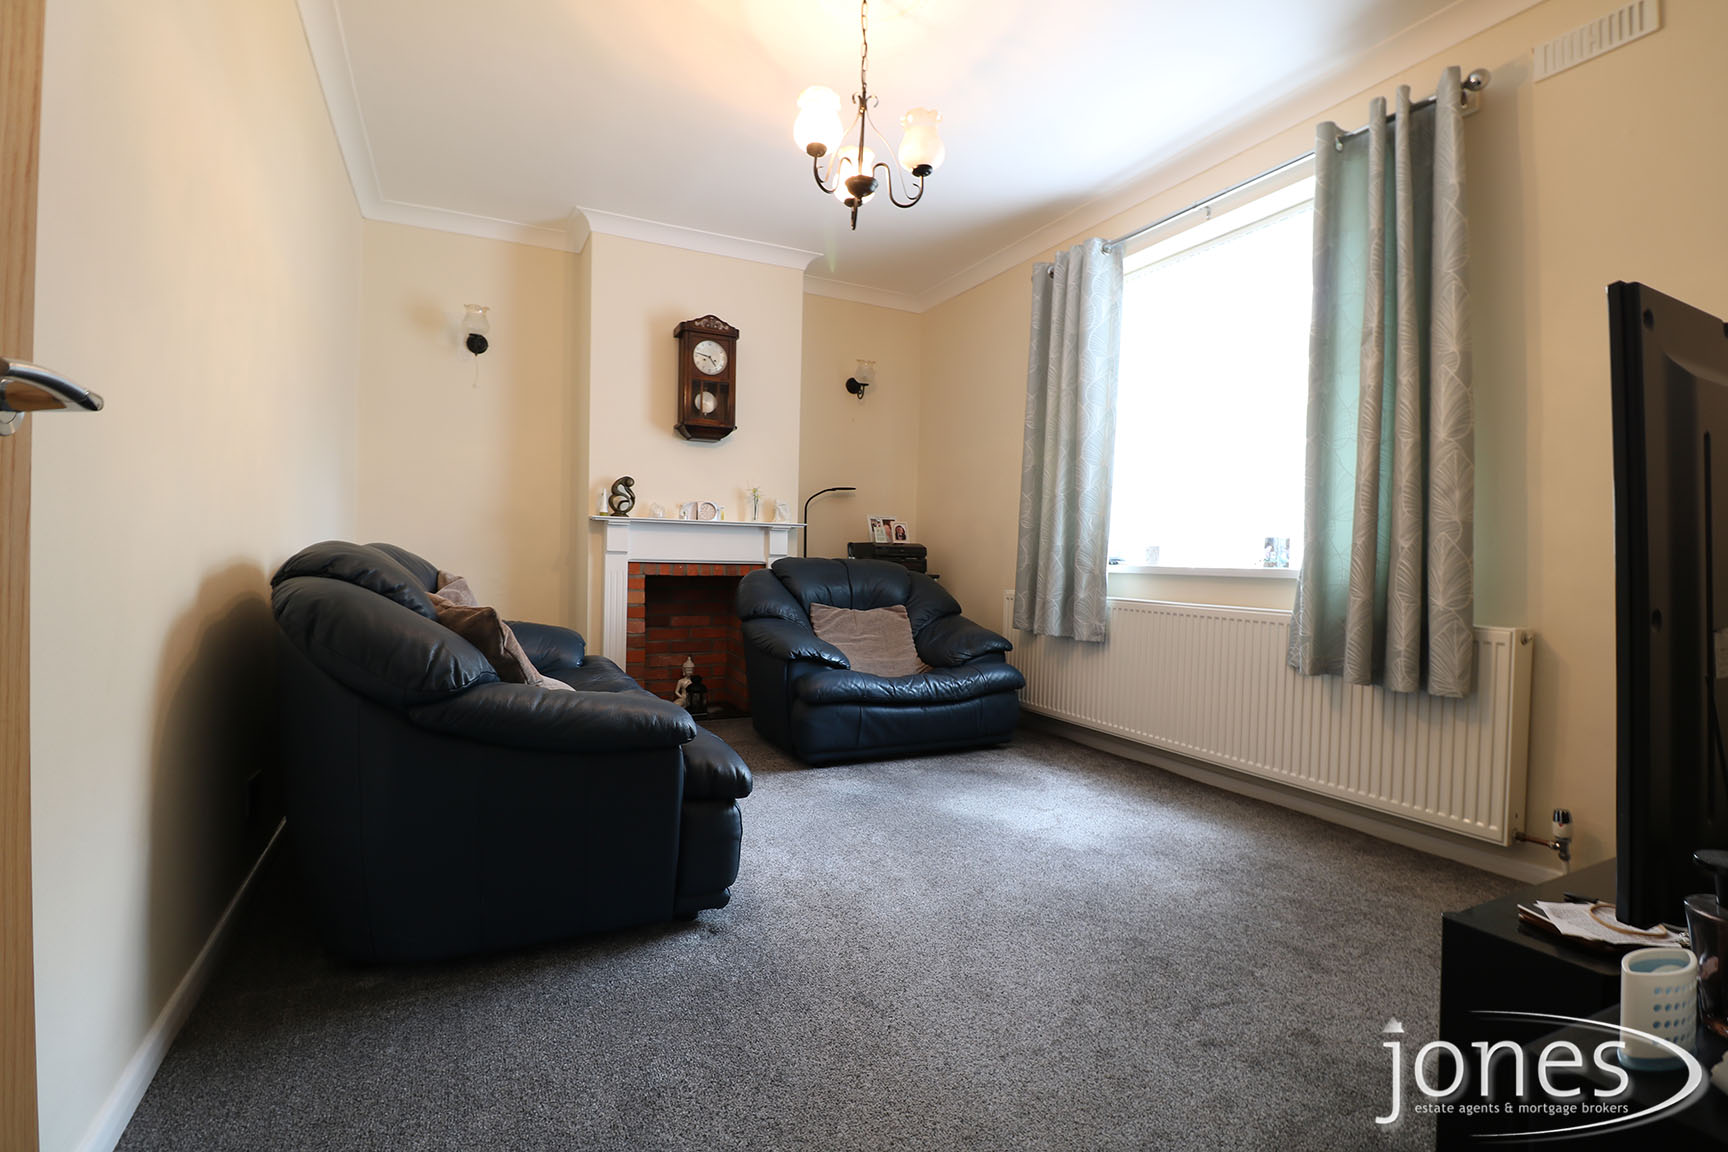 Home for Sale Let - Photo 02 Mill Crescent, Whitwell, Worksop, S80 4SF